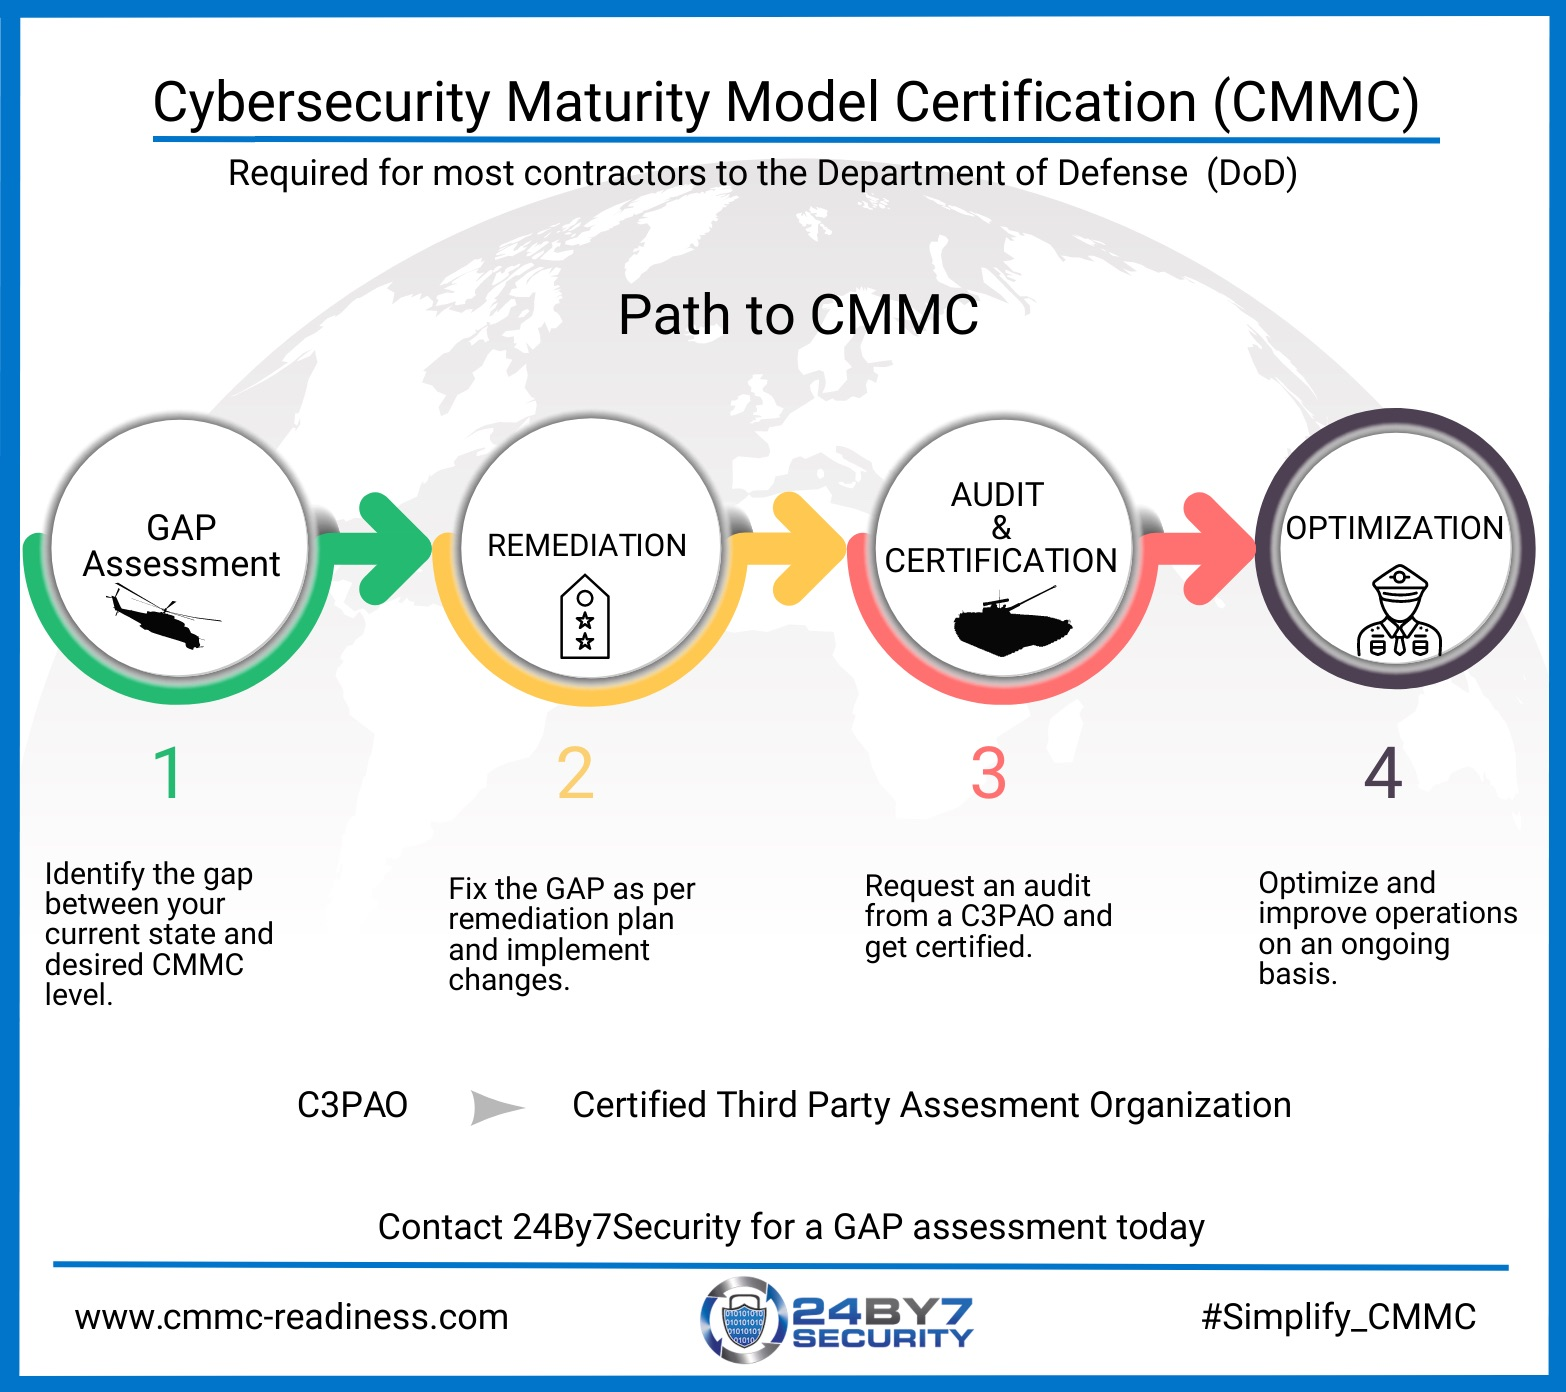 Path to CMMC - Infographic from 24By7Security